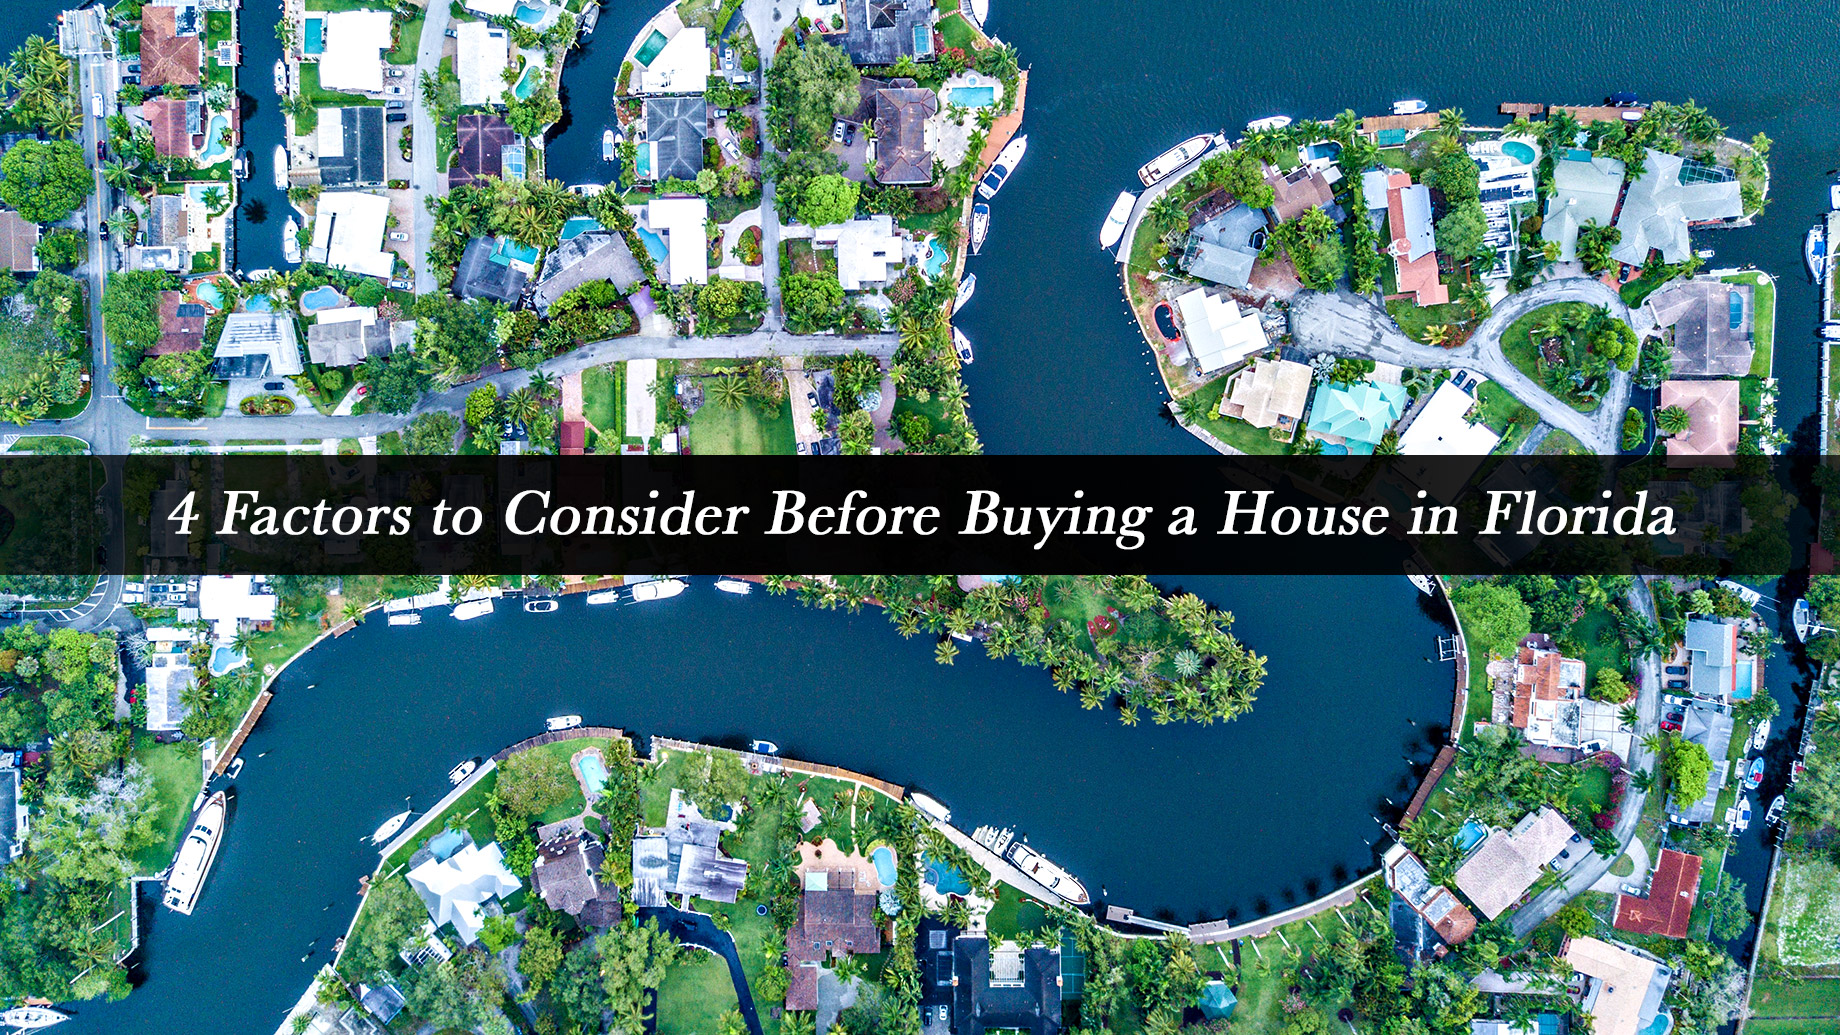 4 Factors to Consider Before Buying a House in Florida